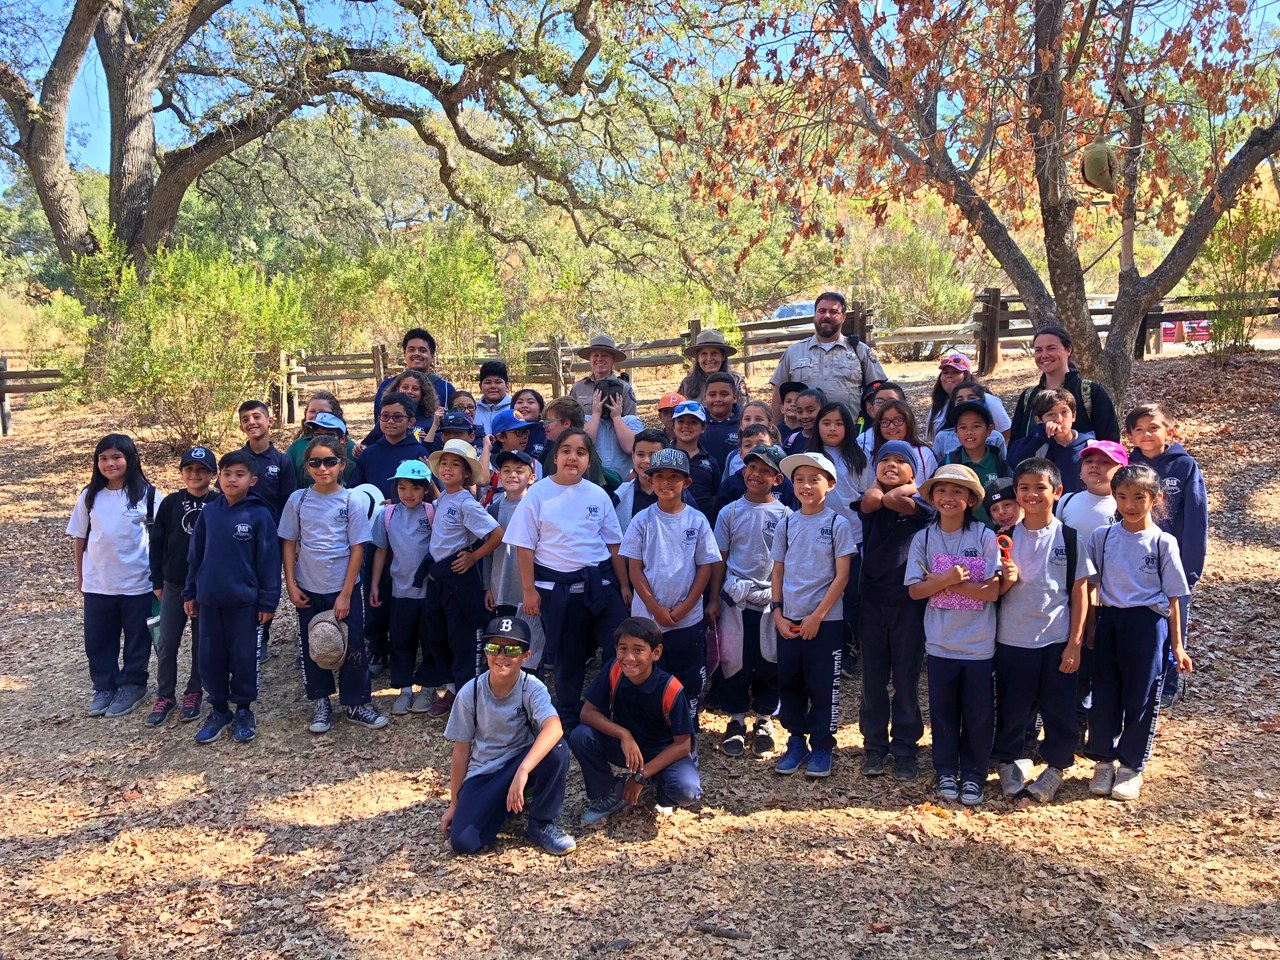 Queen of All Saint School students at Mount Diablo State Park